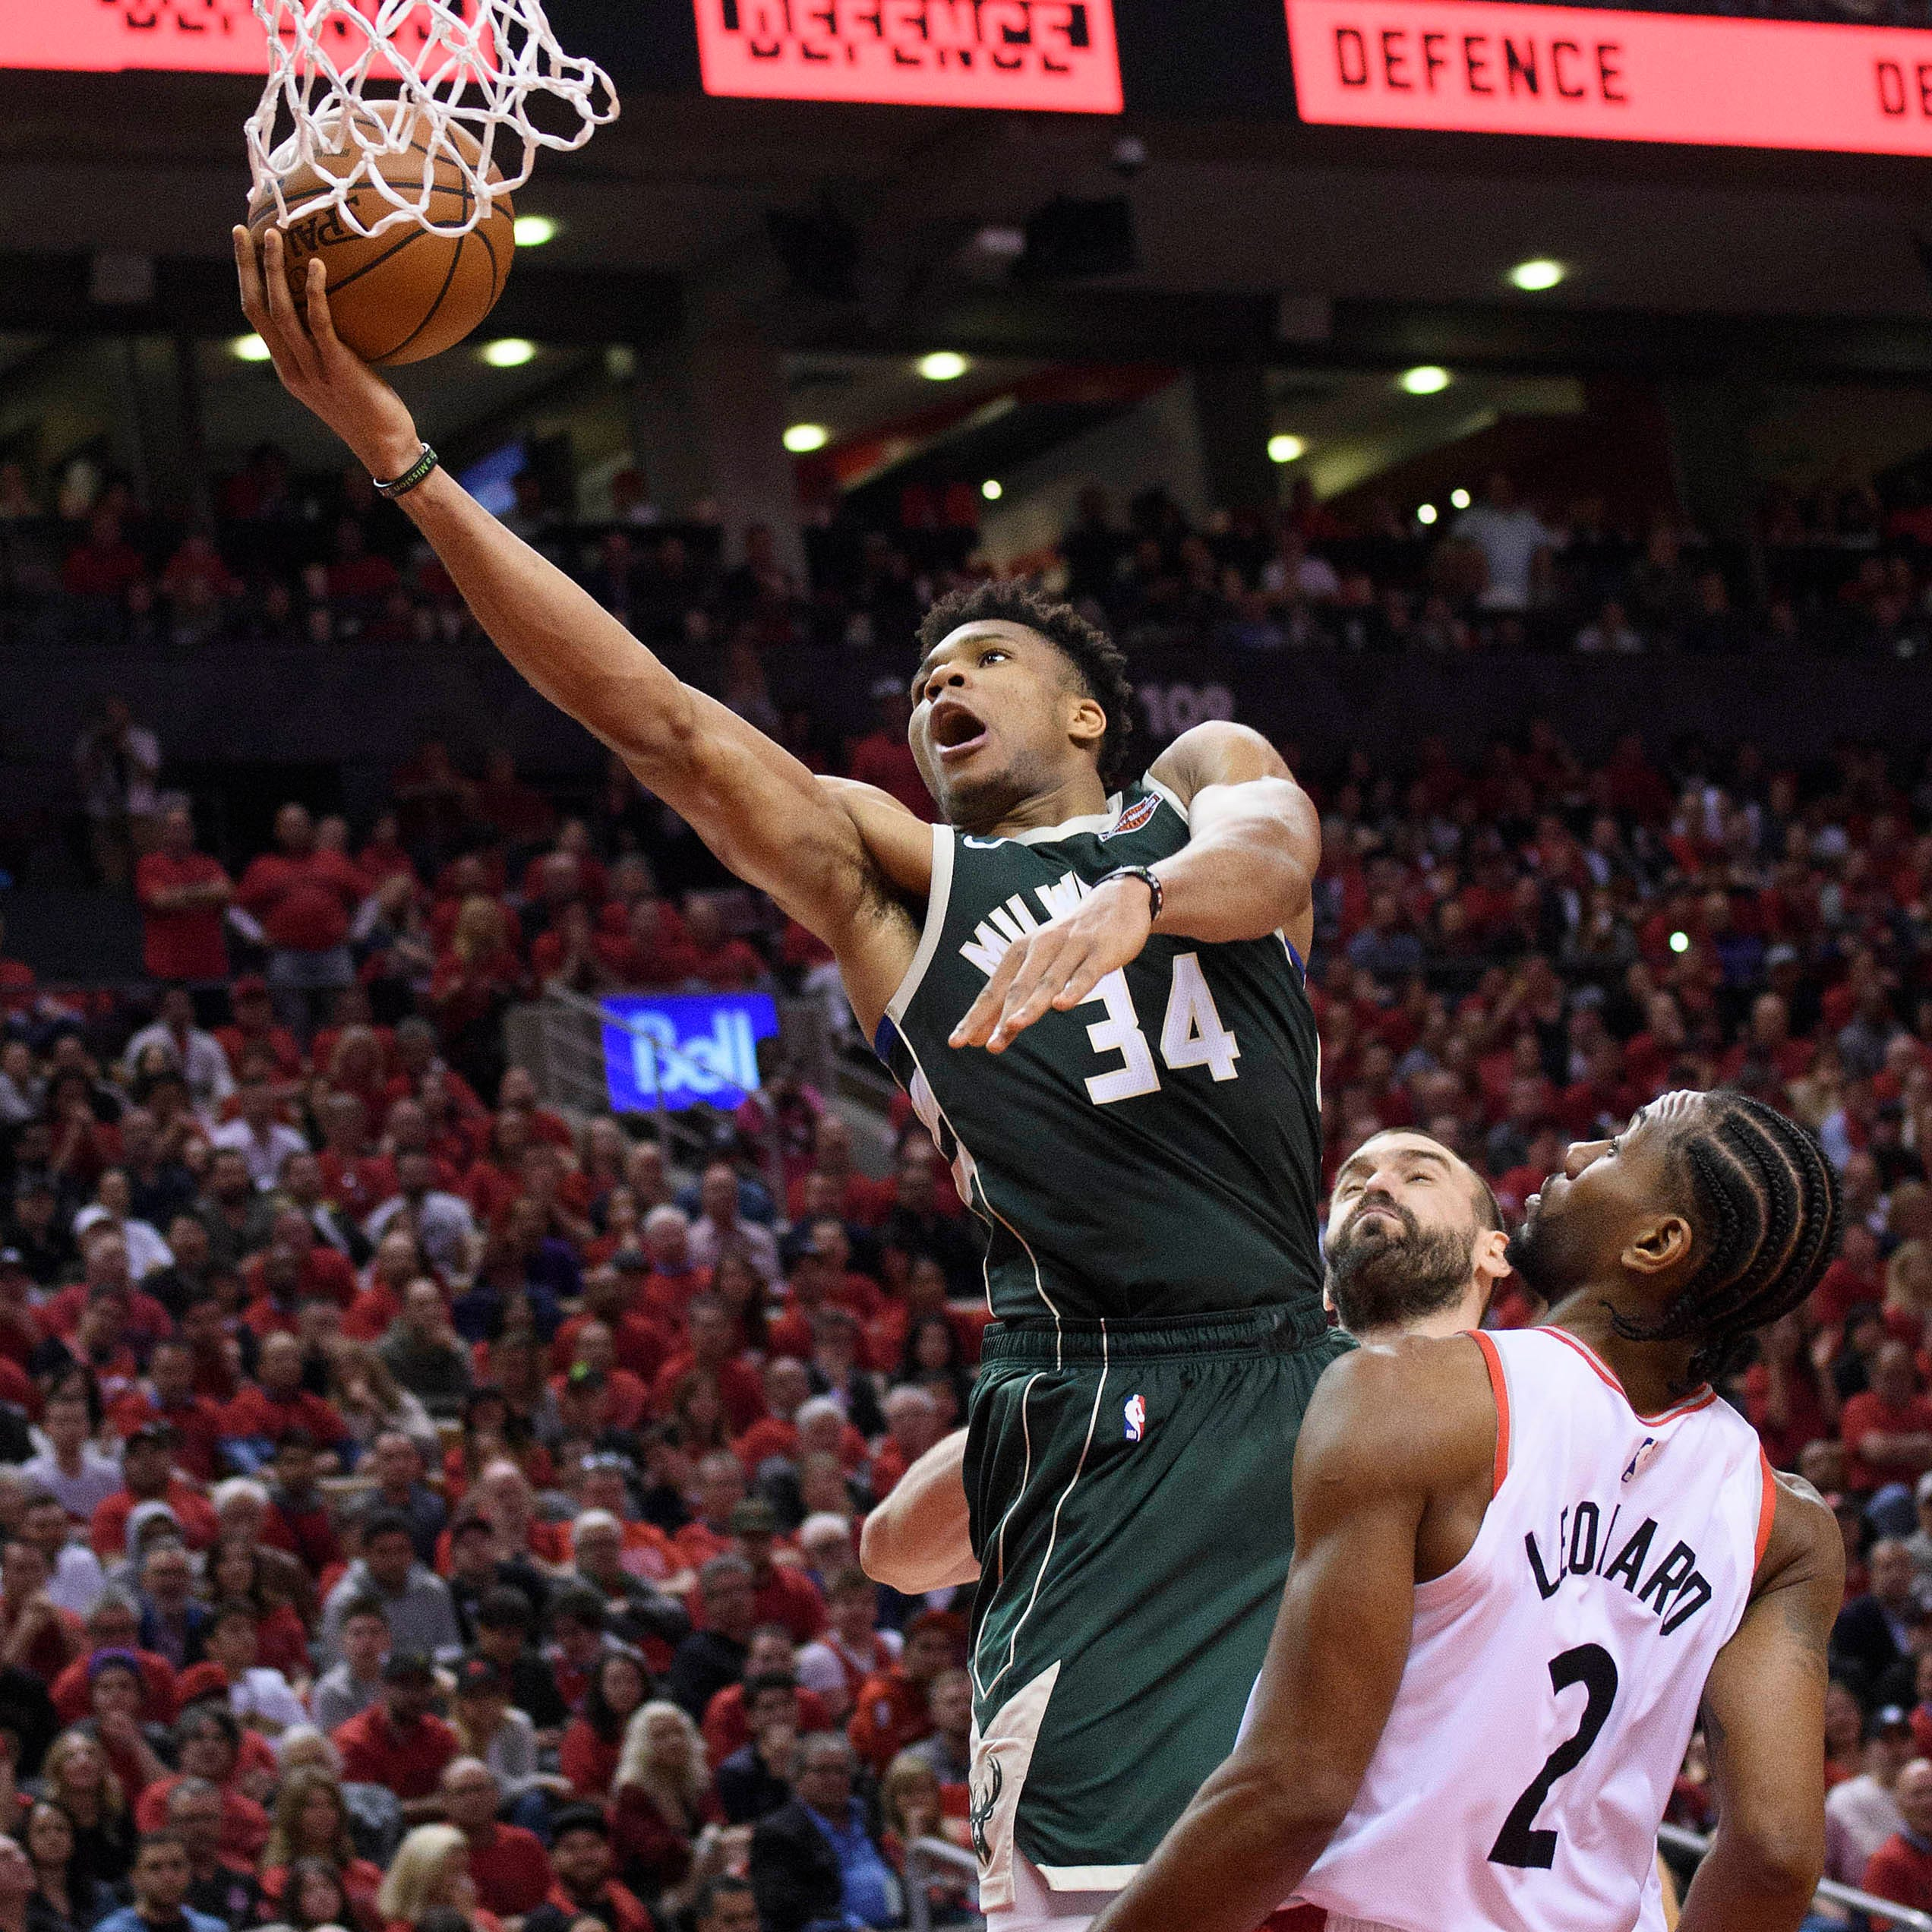 Giannis Antetokounmpo is a unanimous first-team all-NBA pick and becomes eligible for future 'supermax' deal